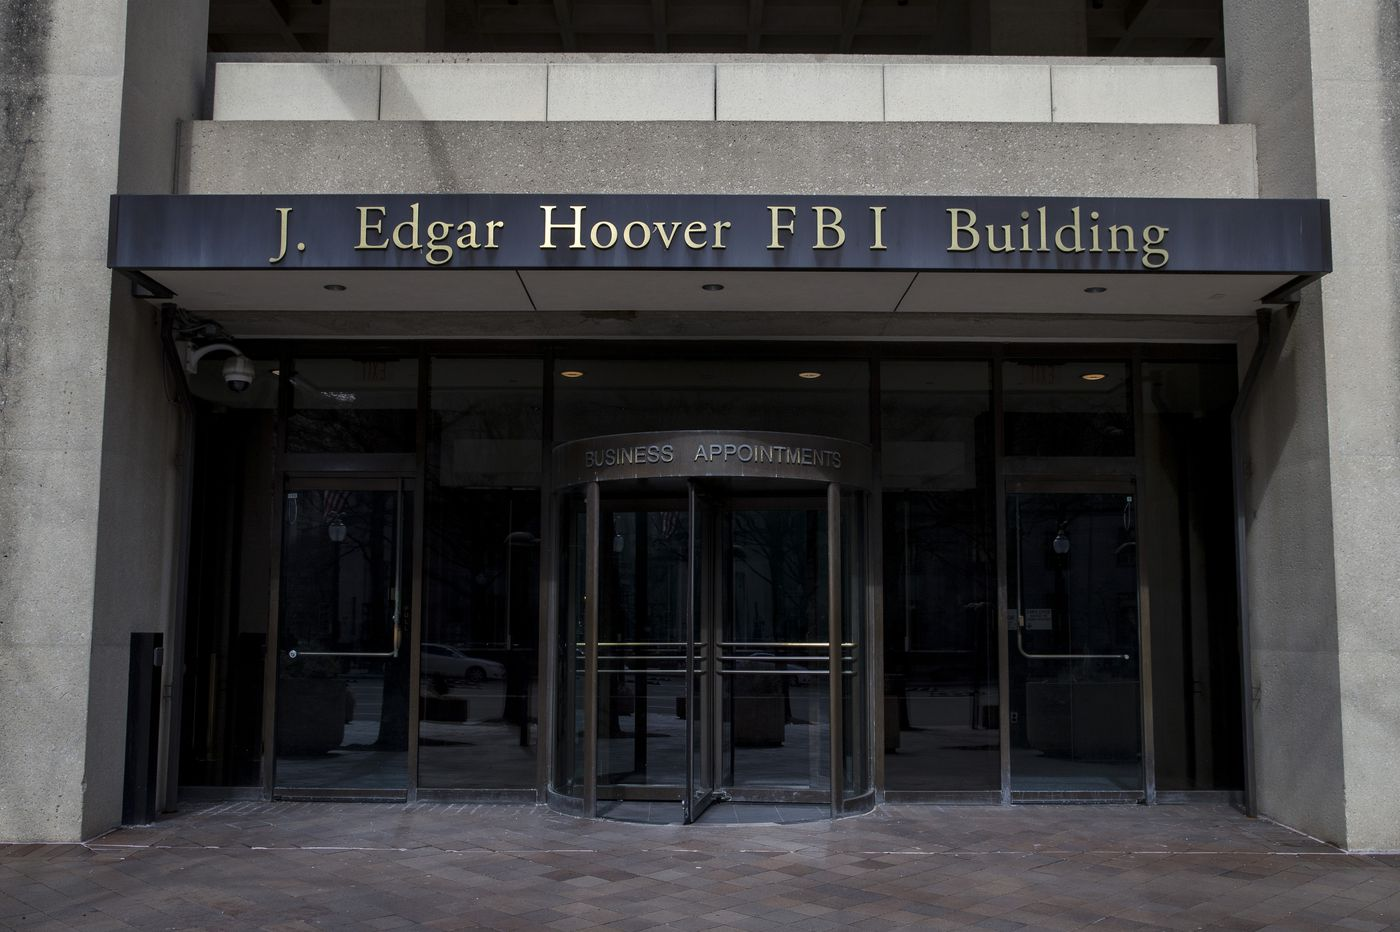 Problems with FBI surveillance extended beyond probe of Trump, Justice Department says